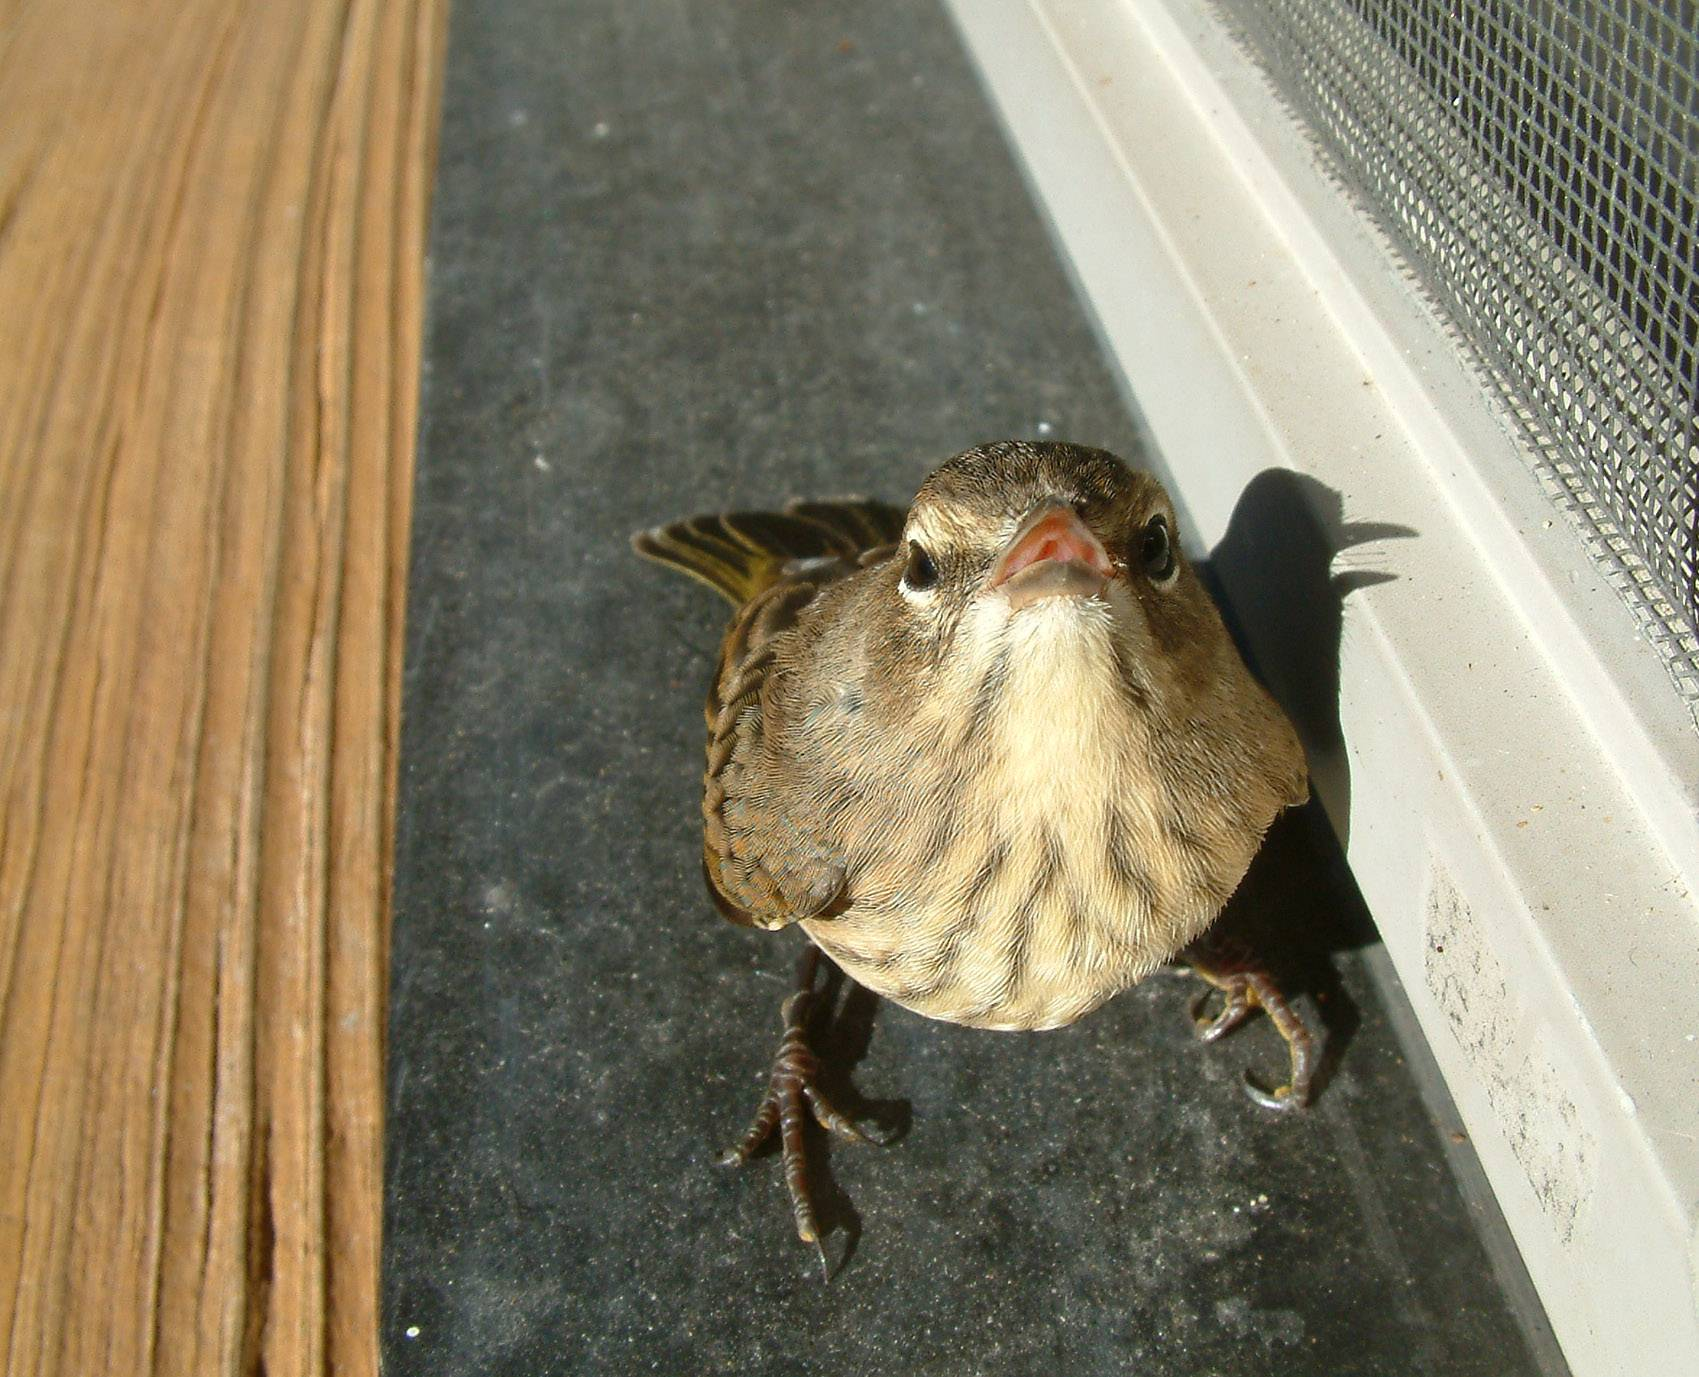 This was taken at a friends house near Apple Canyon Lake, Ill. This little bird flew into the window and was sitting stunned on the deck.  It didn't move for a few minutes, and I was able to get up close to take pictures.